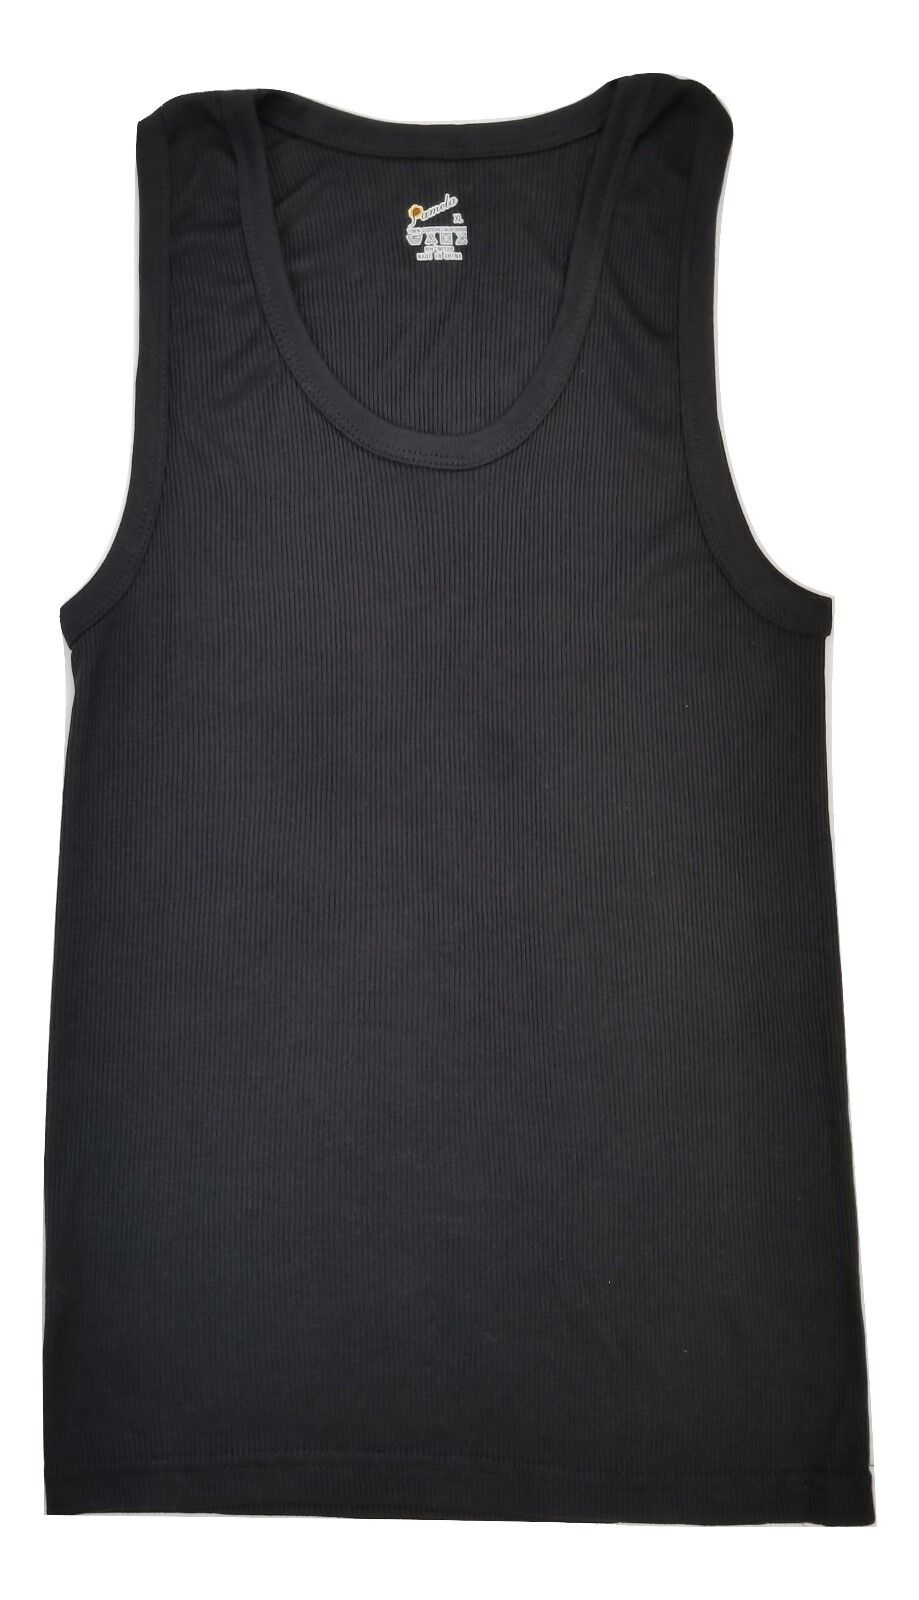 a9181a05db921 Women s Tank Top Solid Color Cotton Ribbed - inkFrog